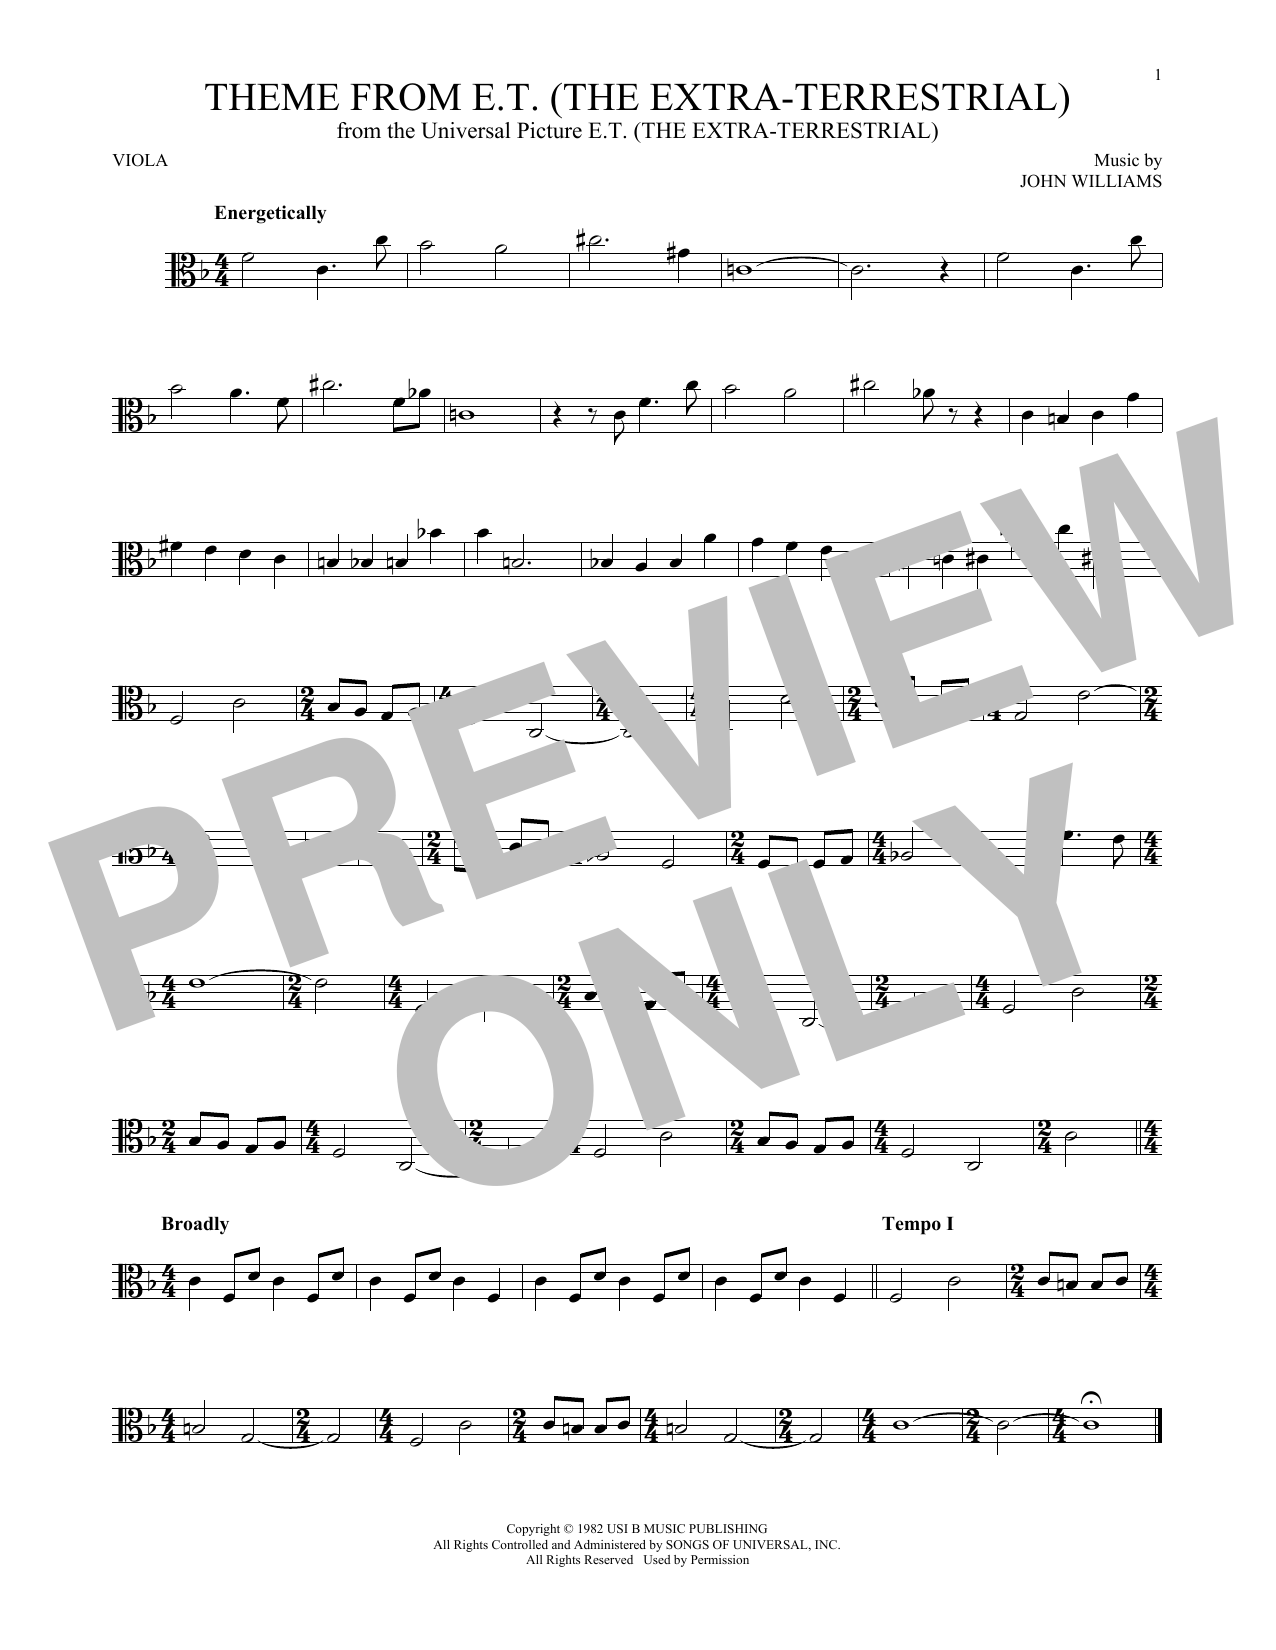 Theme From E.T. (The Extra-Terrestrial) (Viola Solo)